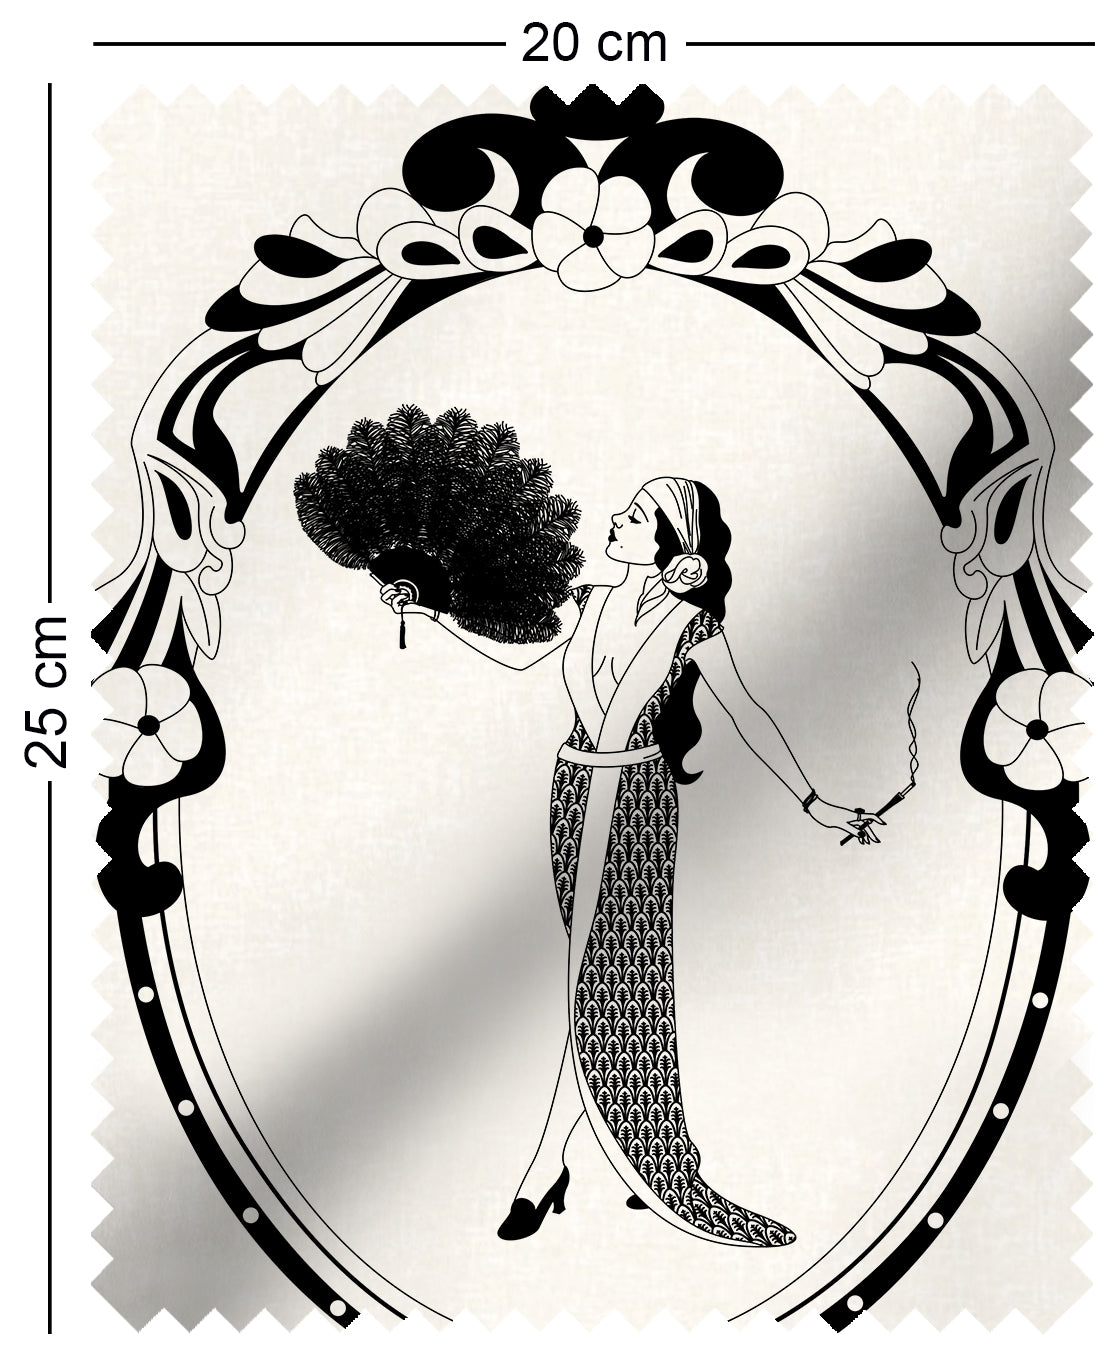 sample fabric with art nouveau design of a woman in monochrome aubrey beardsley